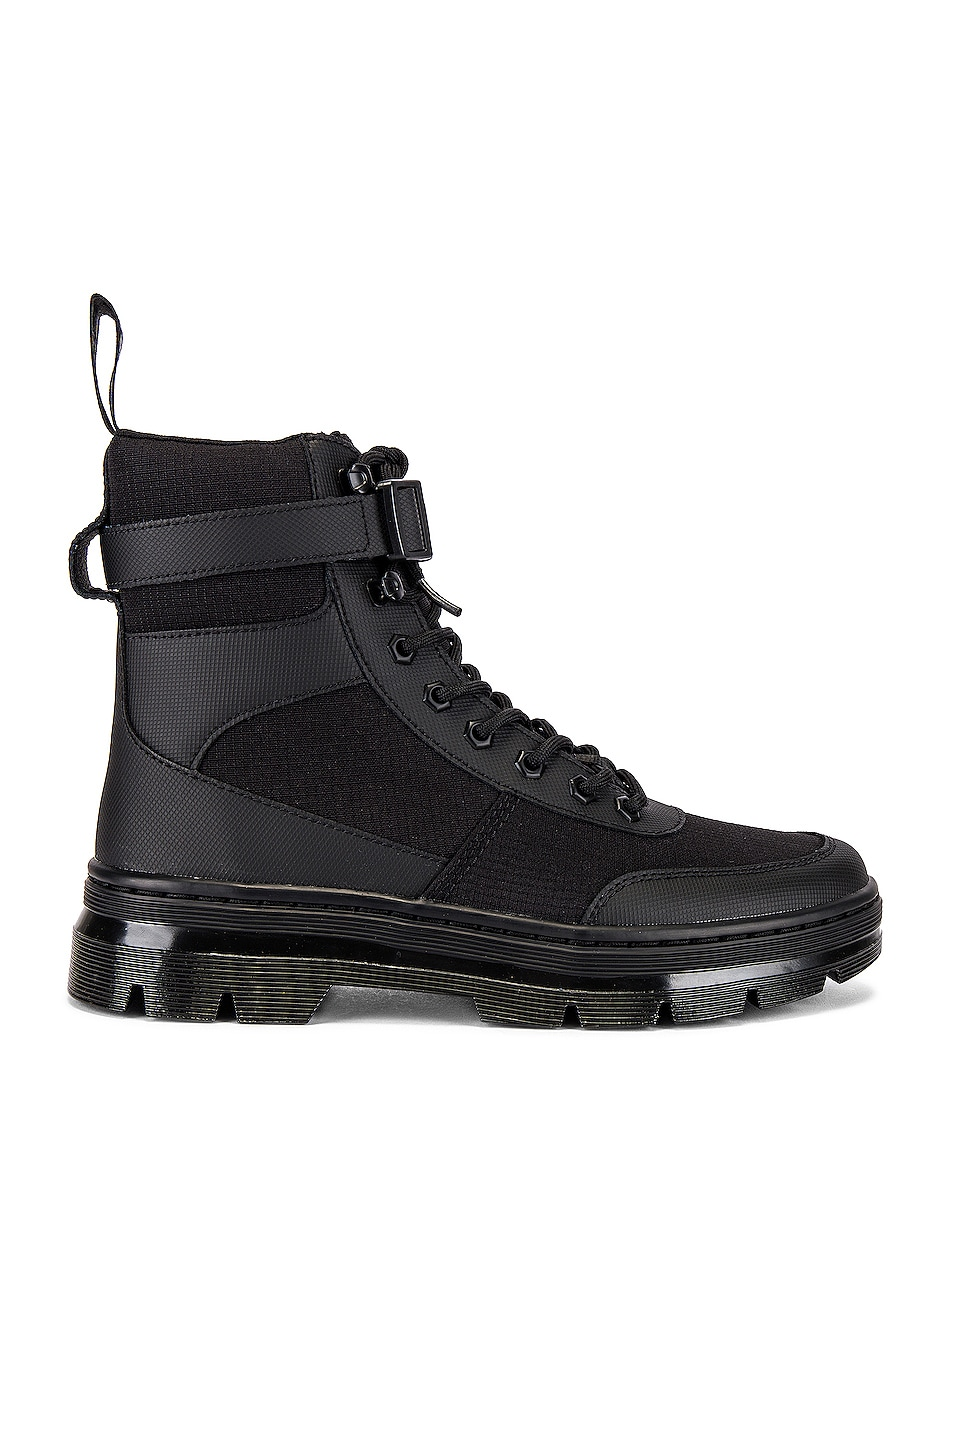 Image 1 of Dr. Martens Combs Tech Sneaker in Black